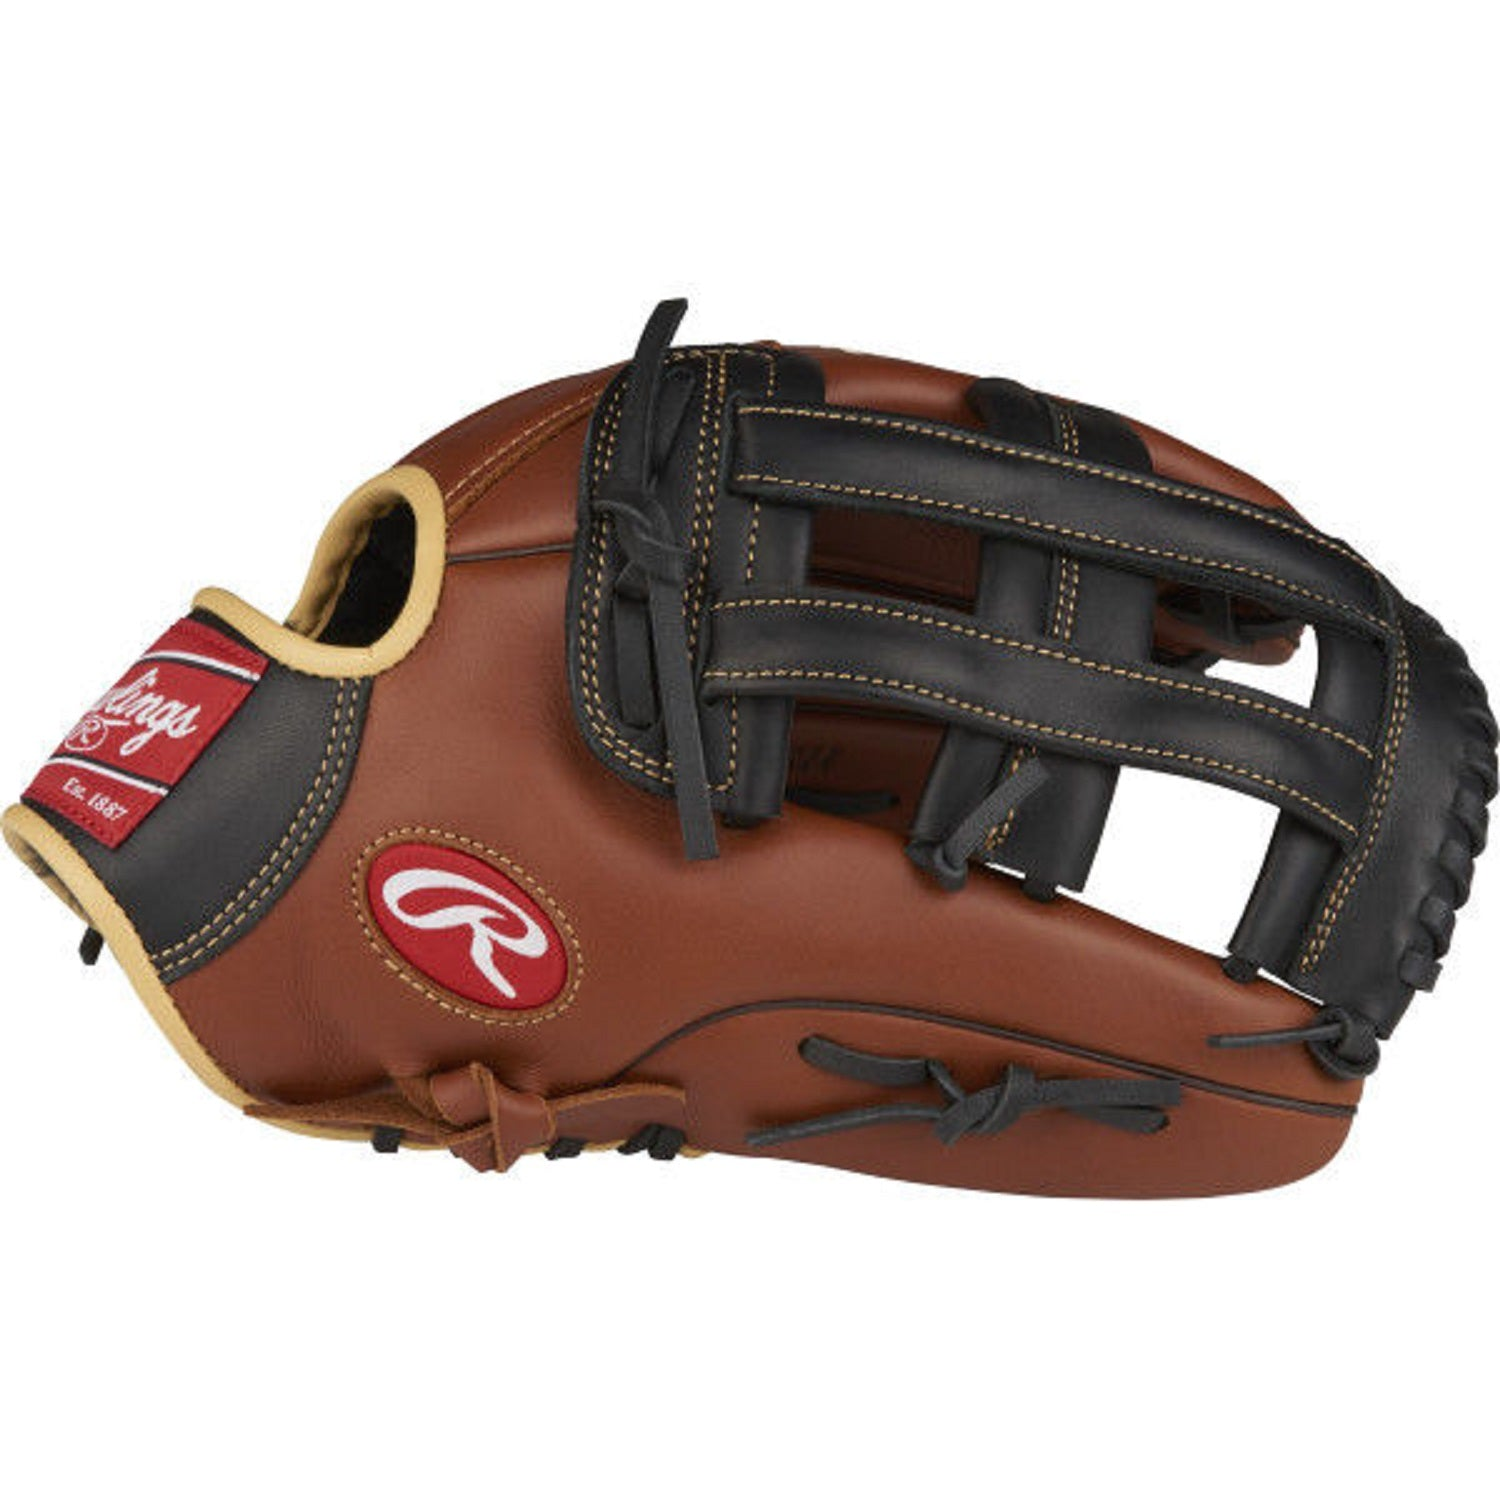 Rawlings Sandlot Series 12.75 in. Outfield Glove - Right - Sports Butler